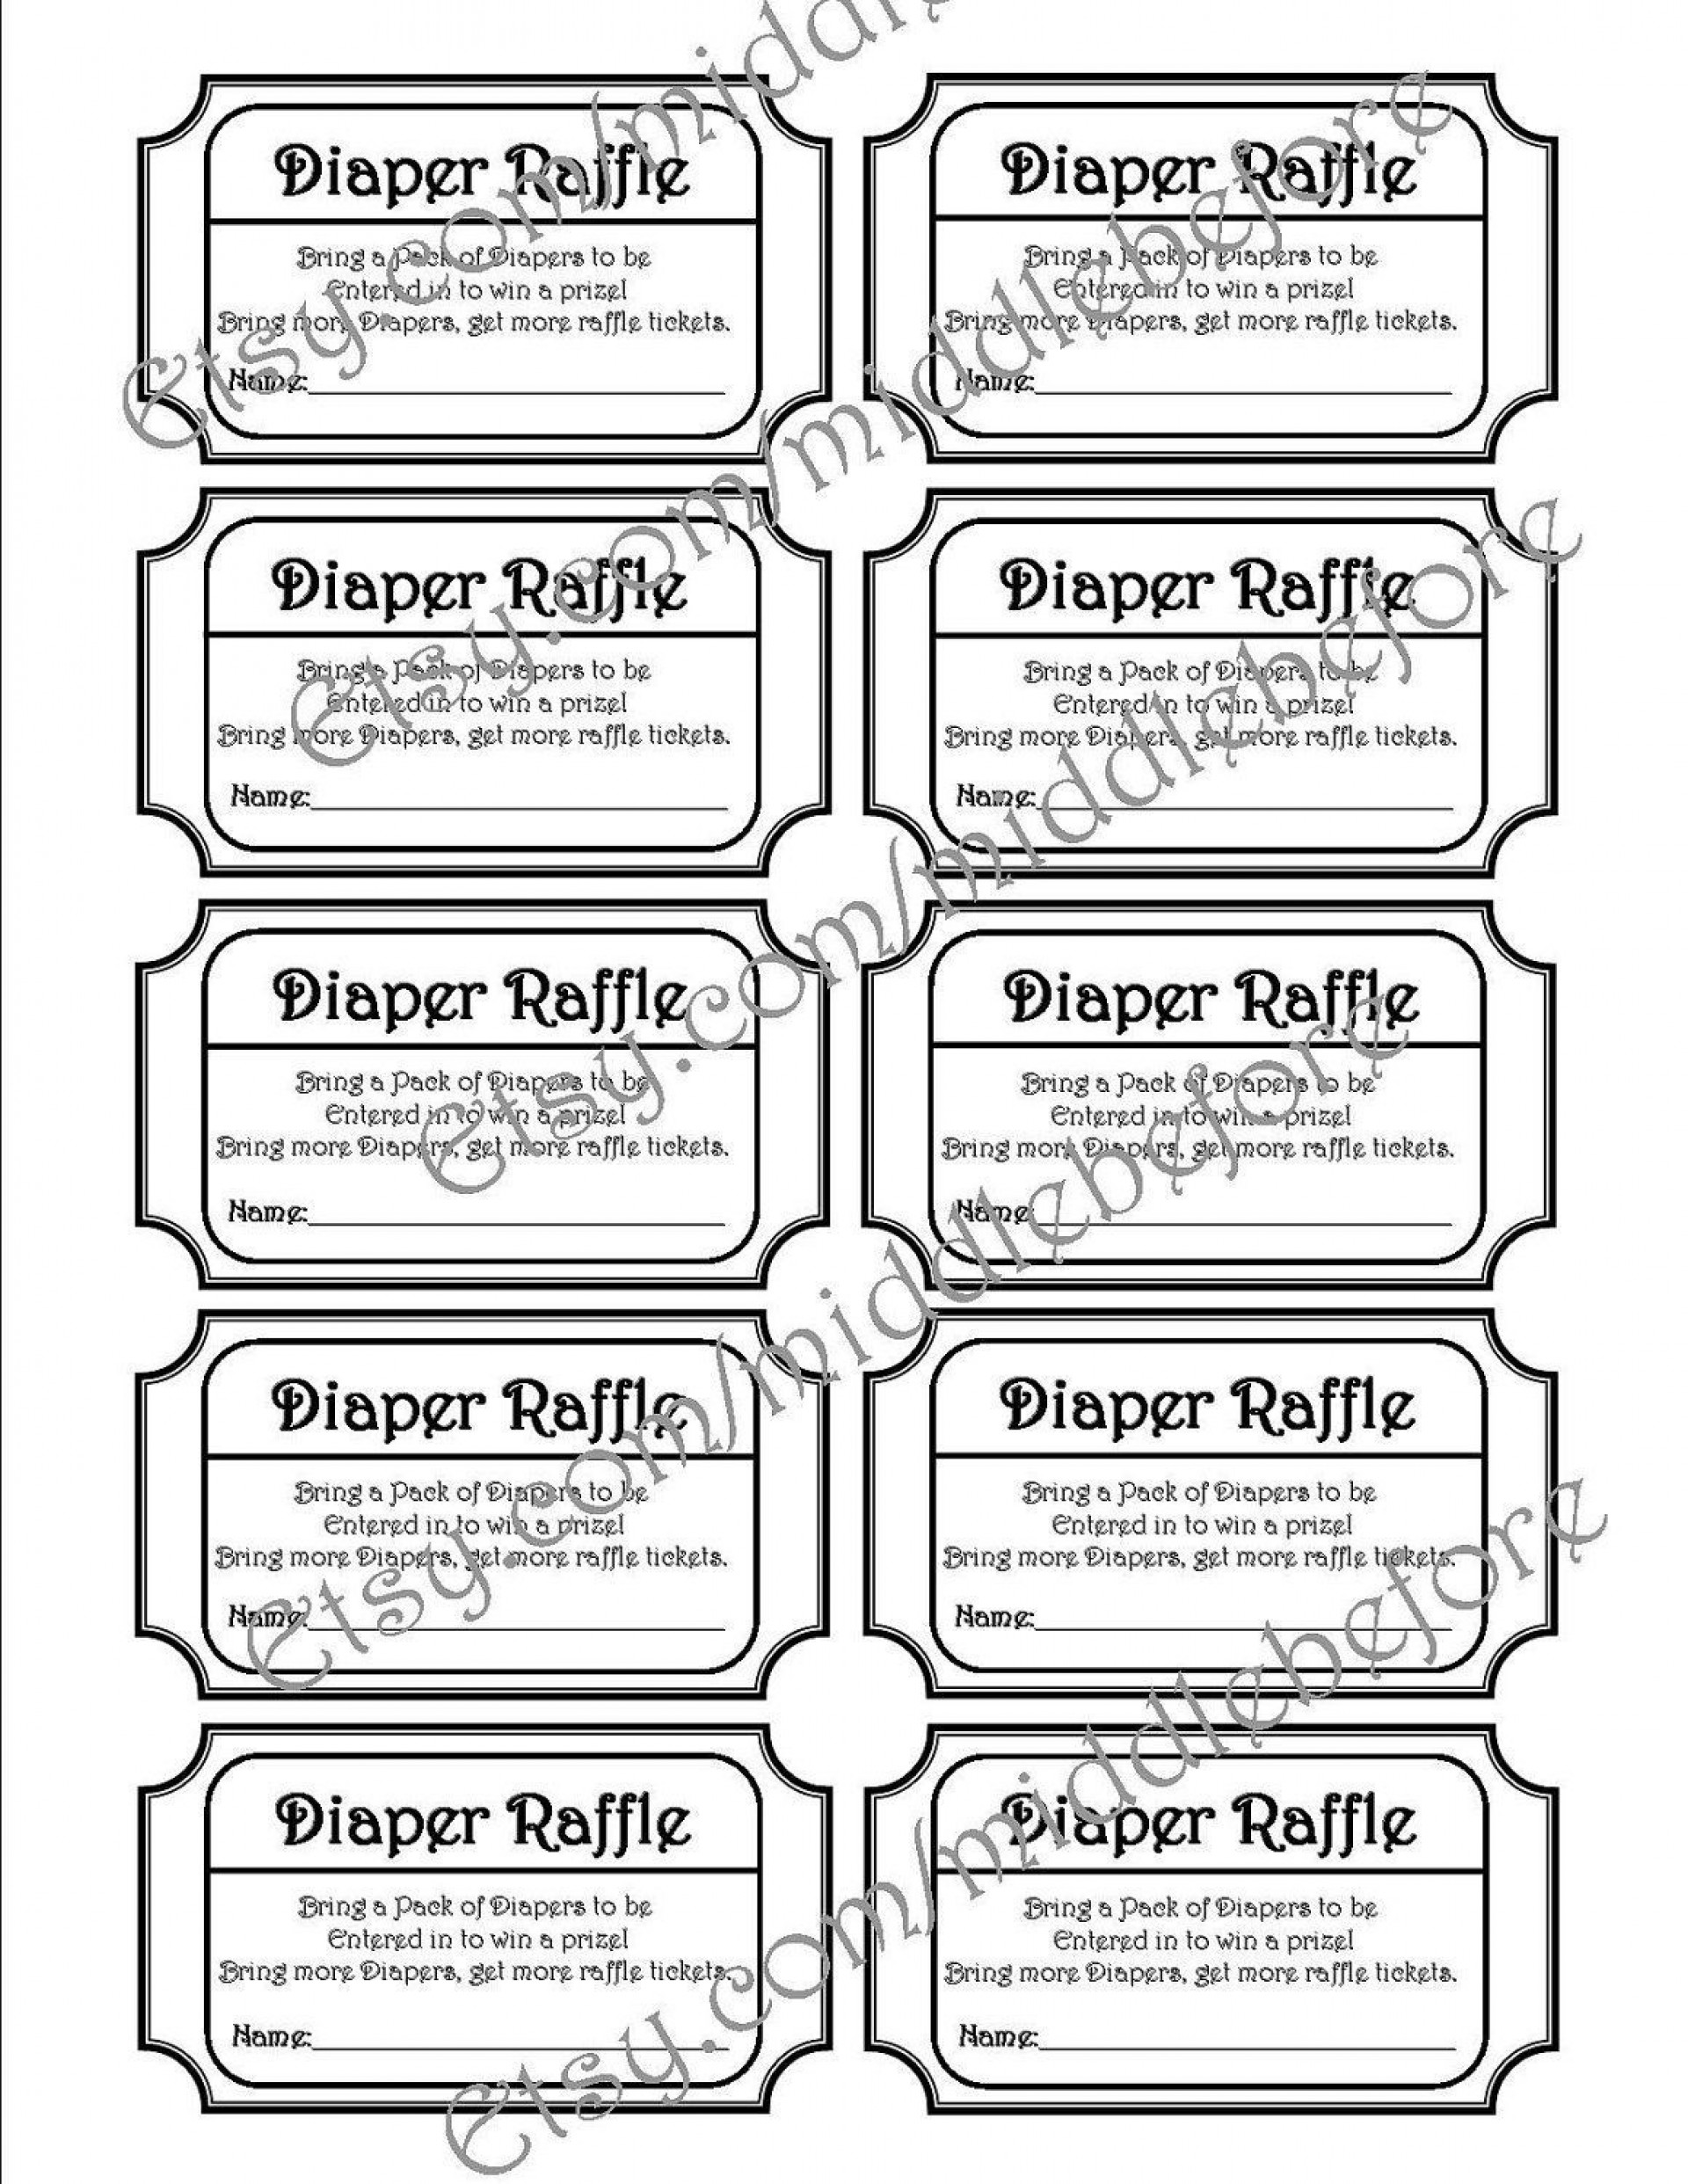 001 Dreaded Diaper Raffle Ticket Template High Resolution  Boy Free Printable Print Black And White1920